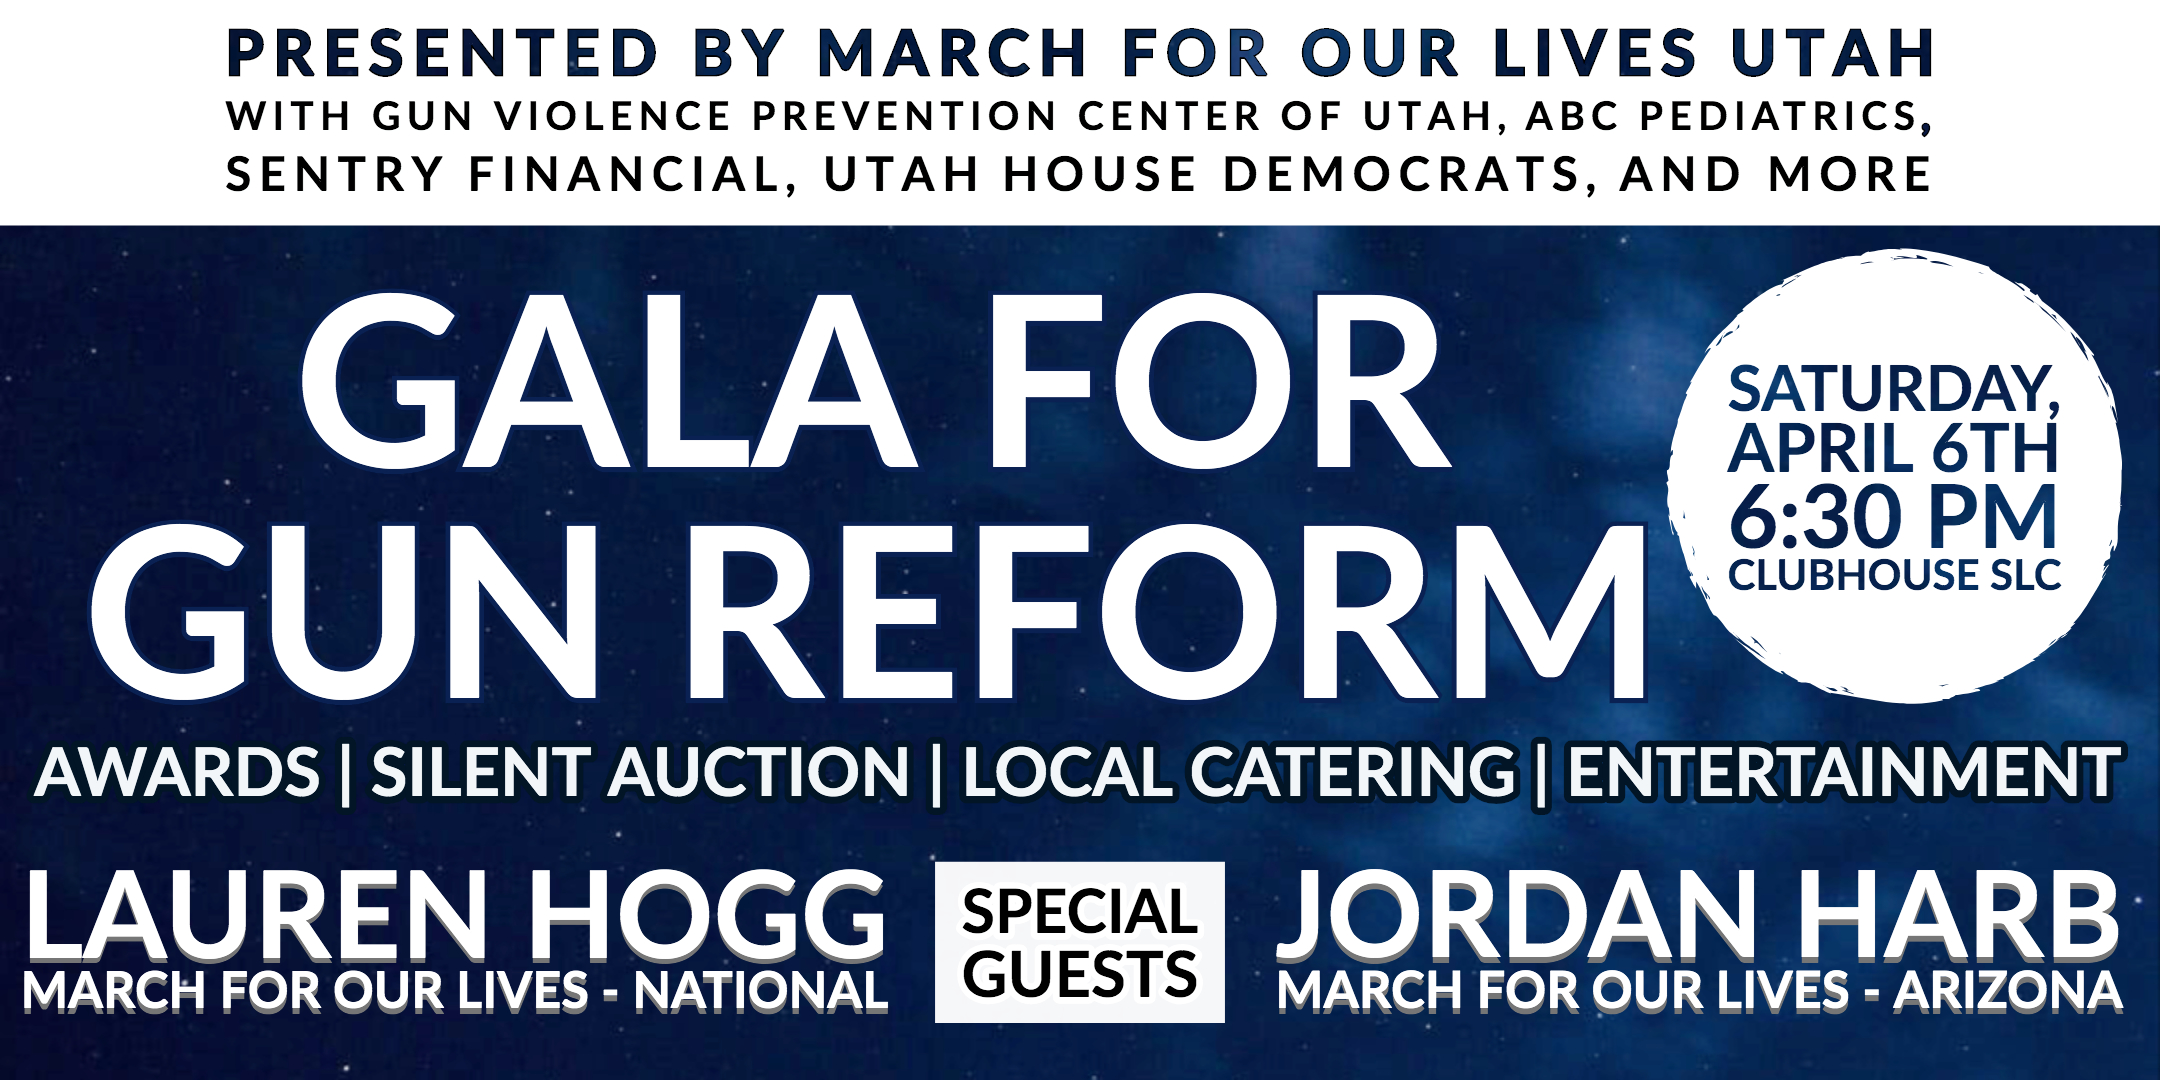 THE GALA - On Saturday, April 6th, all of us will come together to celebrate the progress of the gun reform movement and lay the foundation for the future. Our team is preparing an amazing night, and we want you there. Get your tickets here.